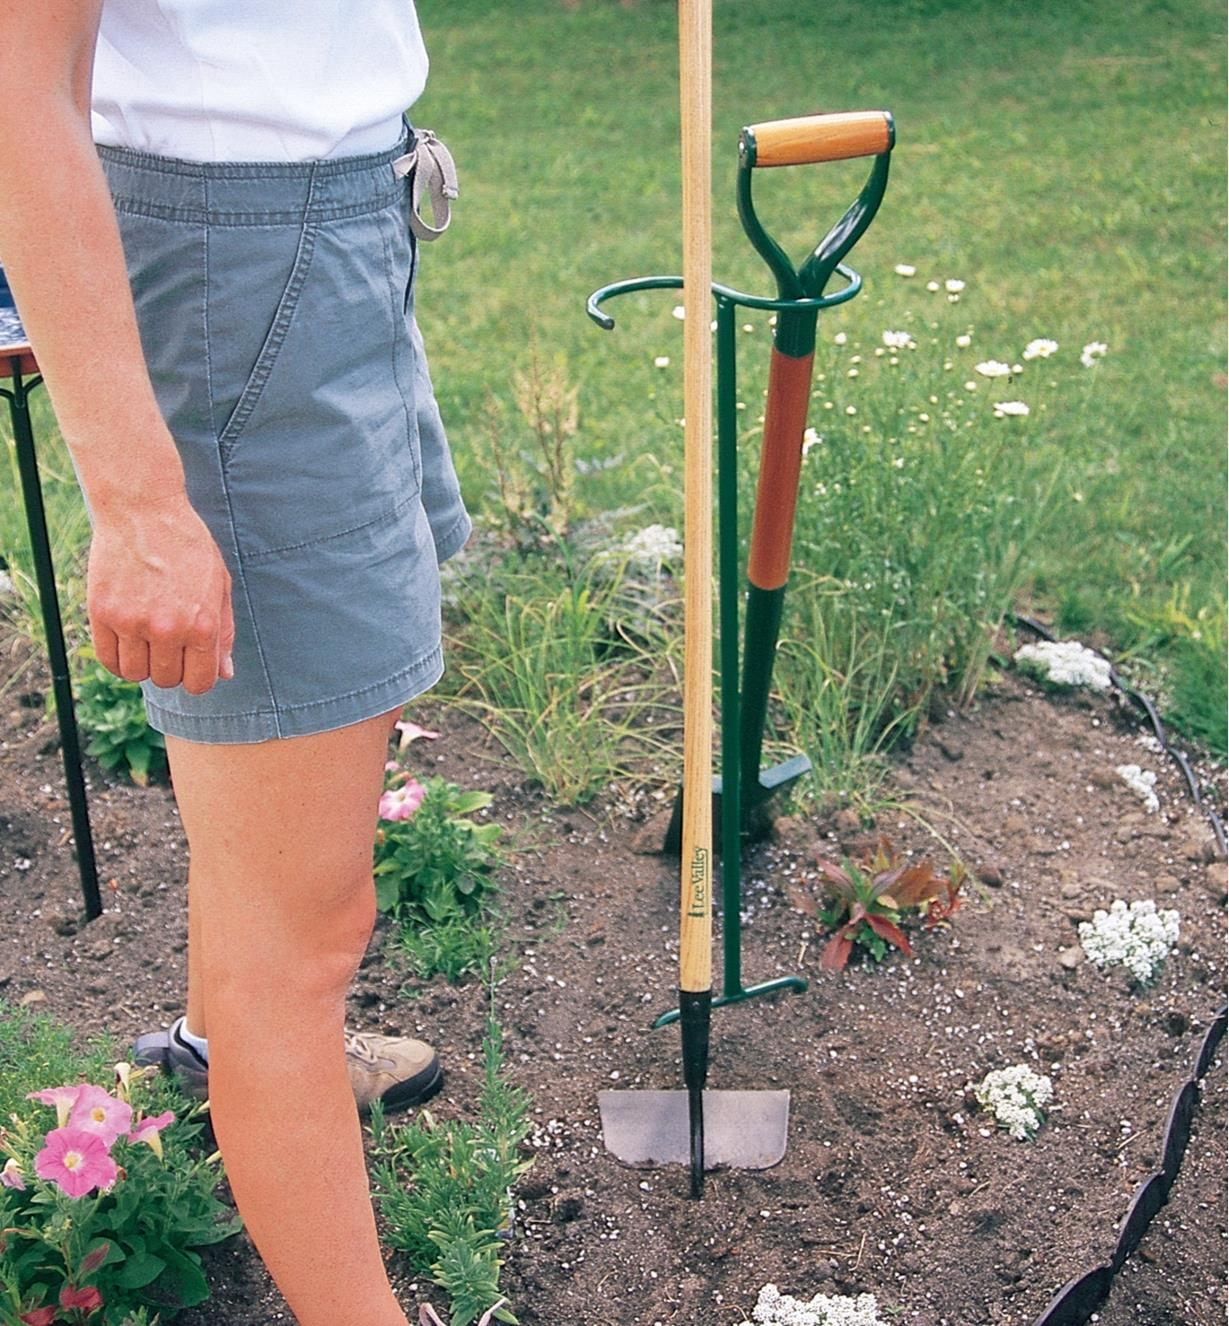 A woman leans a hoe against a Macgregor Tool Butler installed in a garden